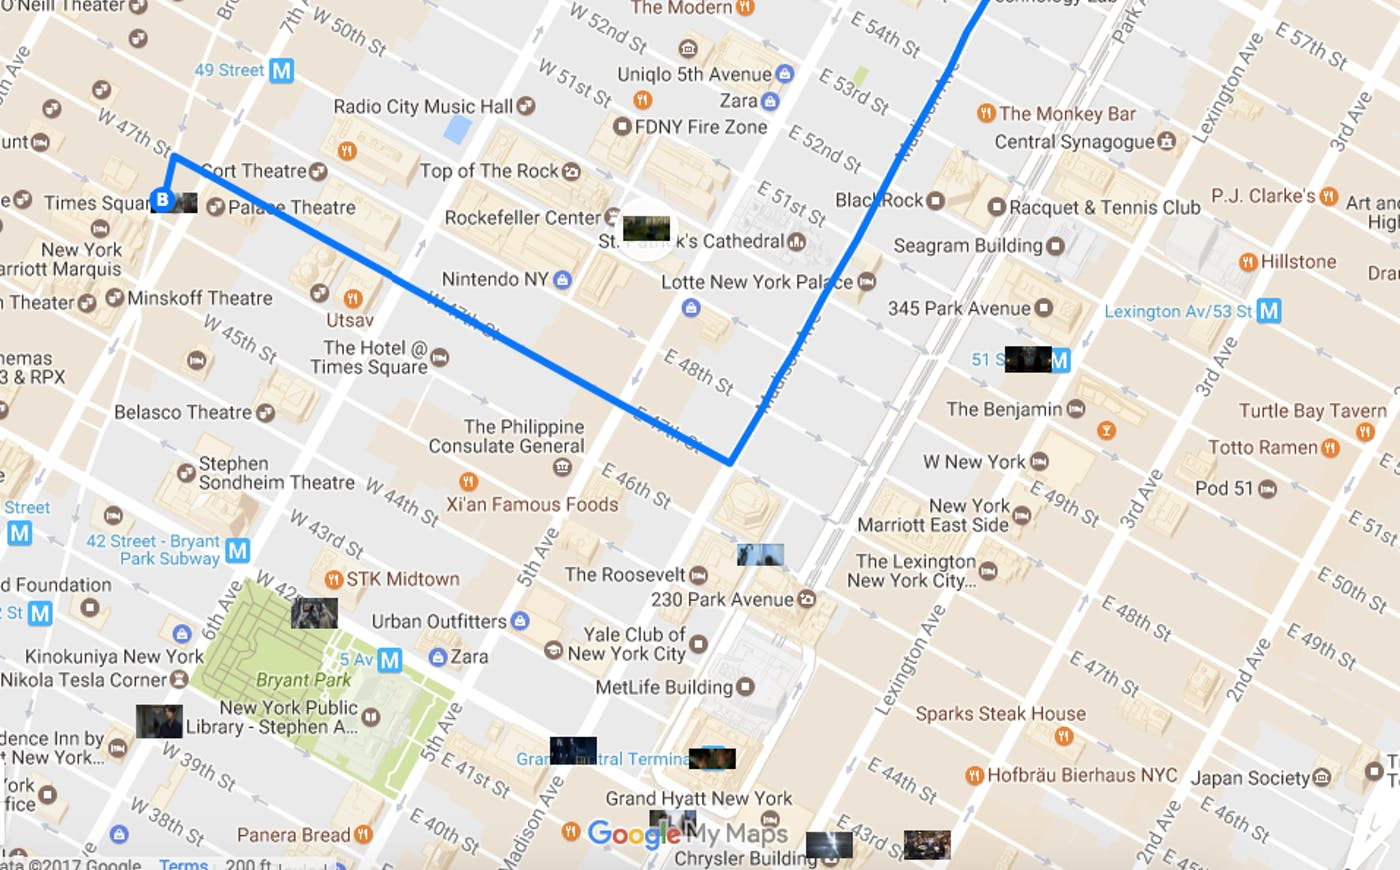 Map Of Midtown New York.The Definitive Map Of Marvel S New York City Inverse